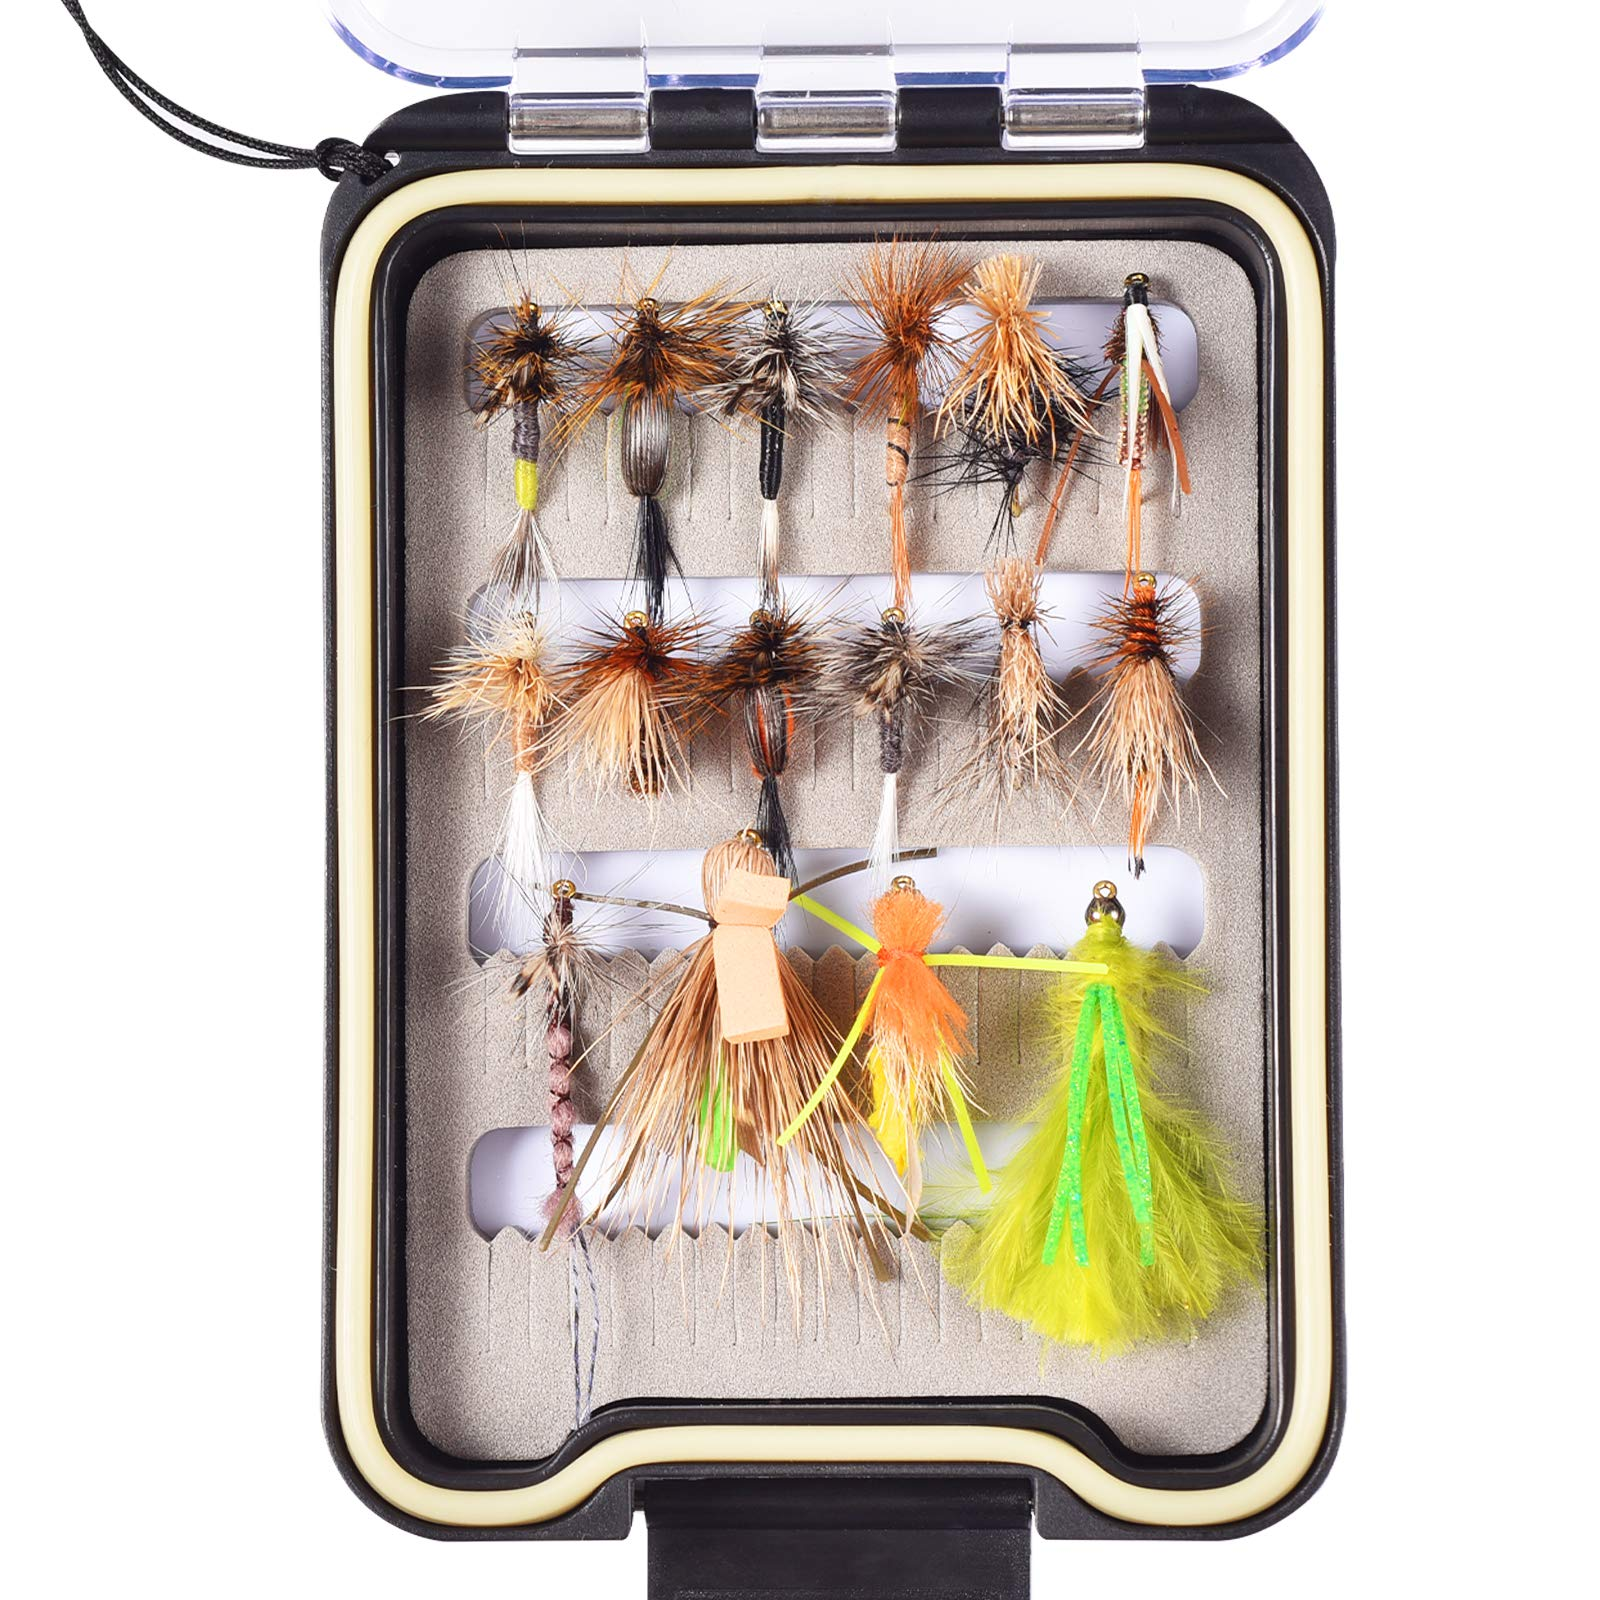 FISHINGSIR Fly Fishing Flies Kit - 16pcs Handmade Fly Fishing Lures - Wet/Dry Flies, Streamer, Nymph, Emerger with Waterproof Fly Box by FISHINGSIR